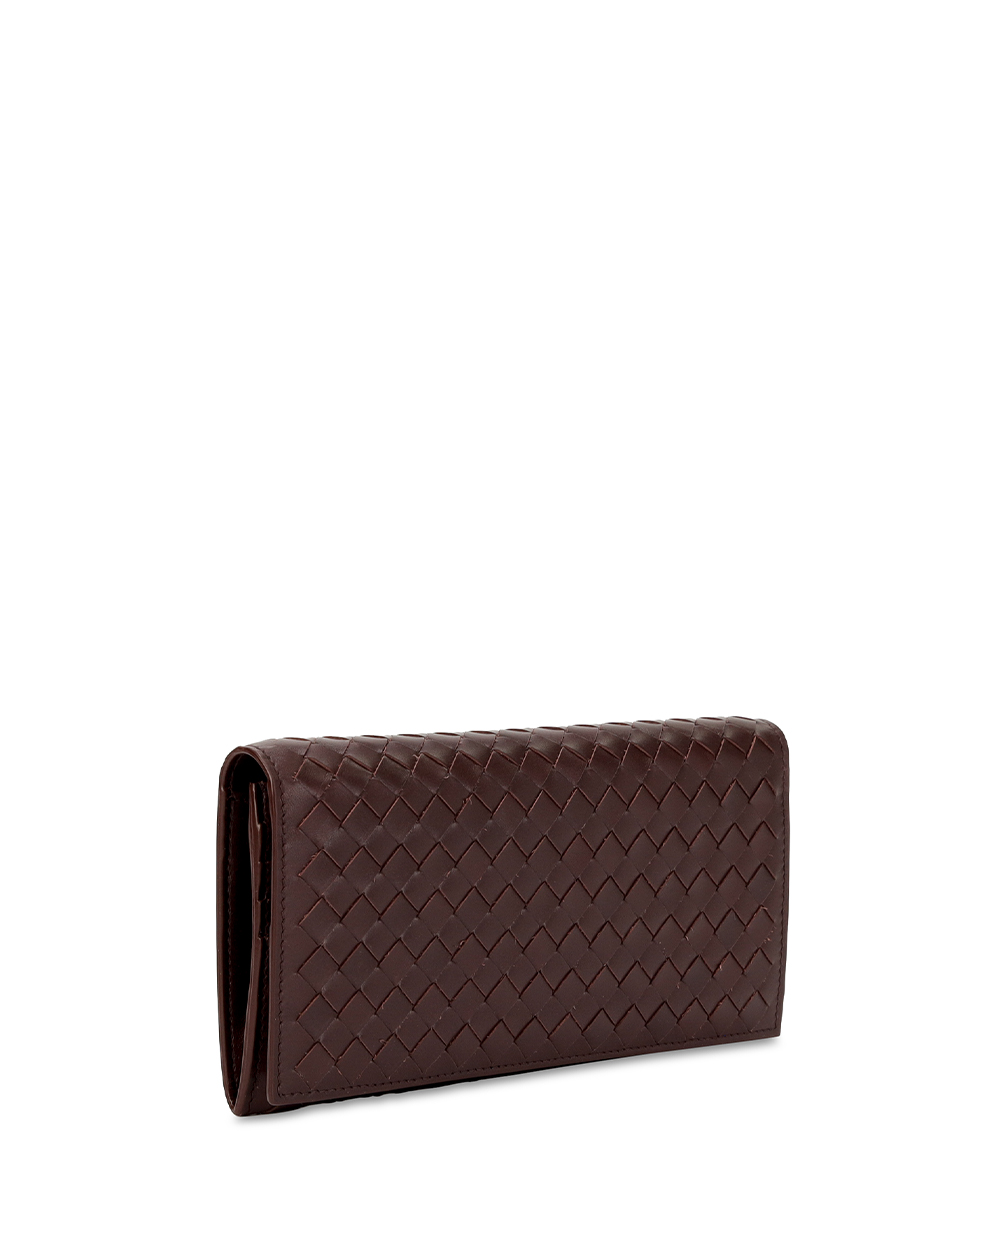 Woven Leather Wallet 2